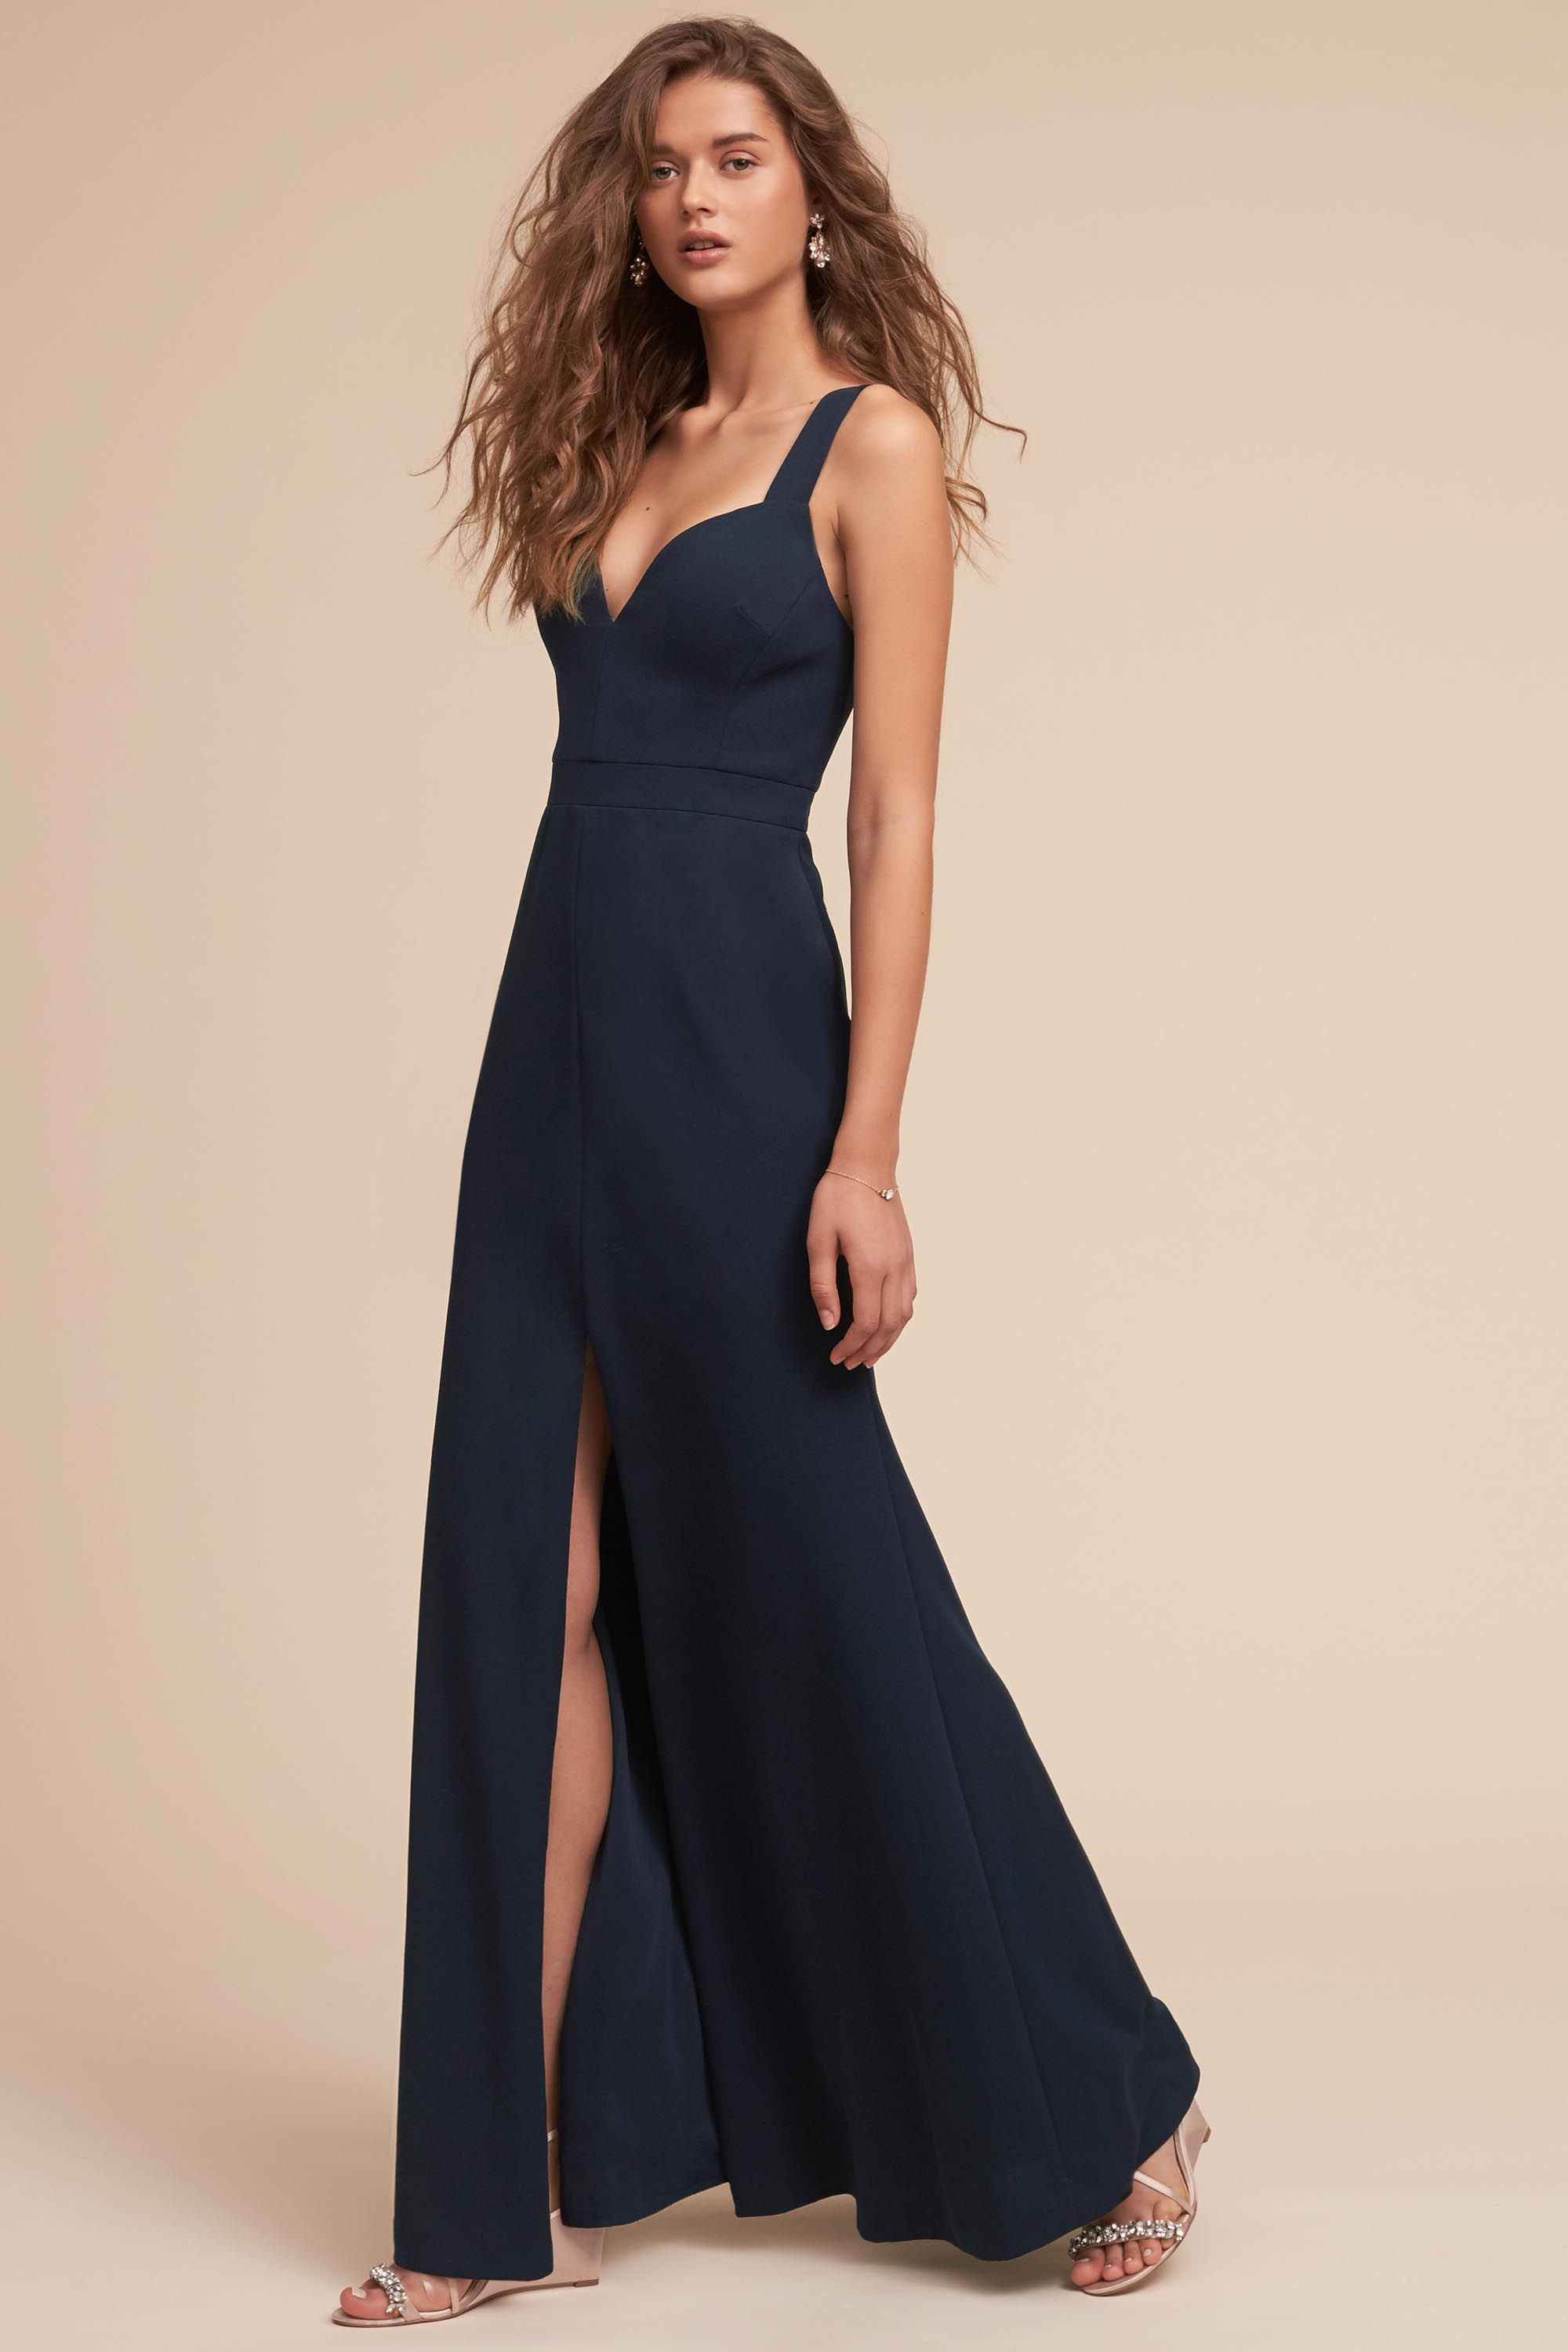 Ansel dress from bhldn fancy letus get dressed up pinterest